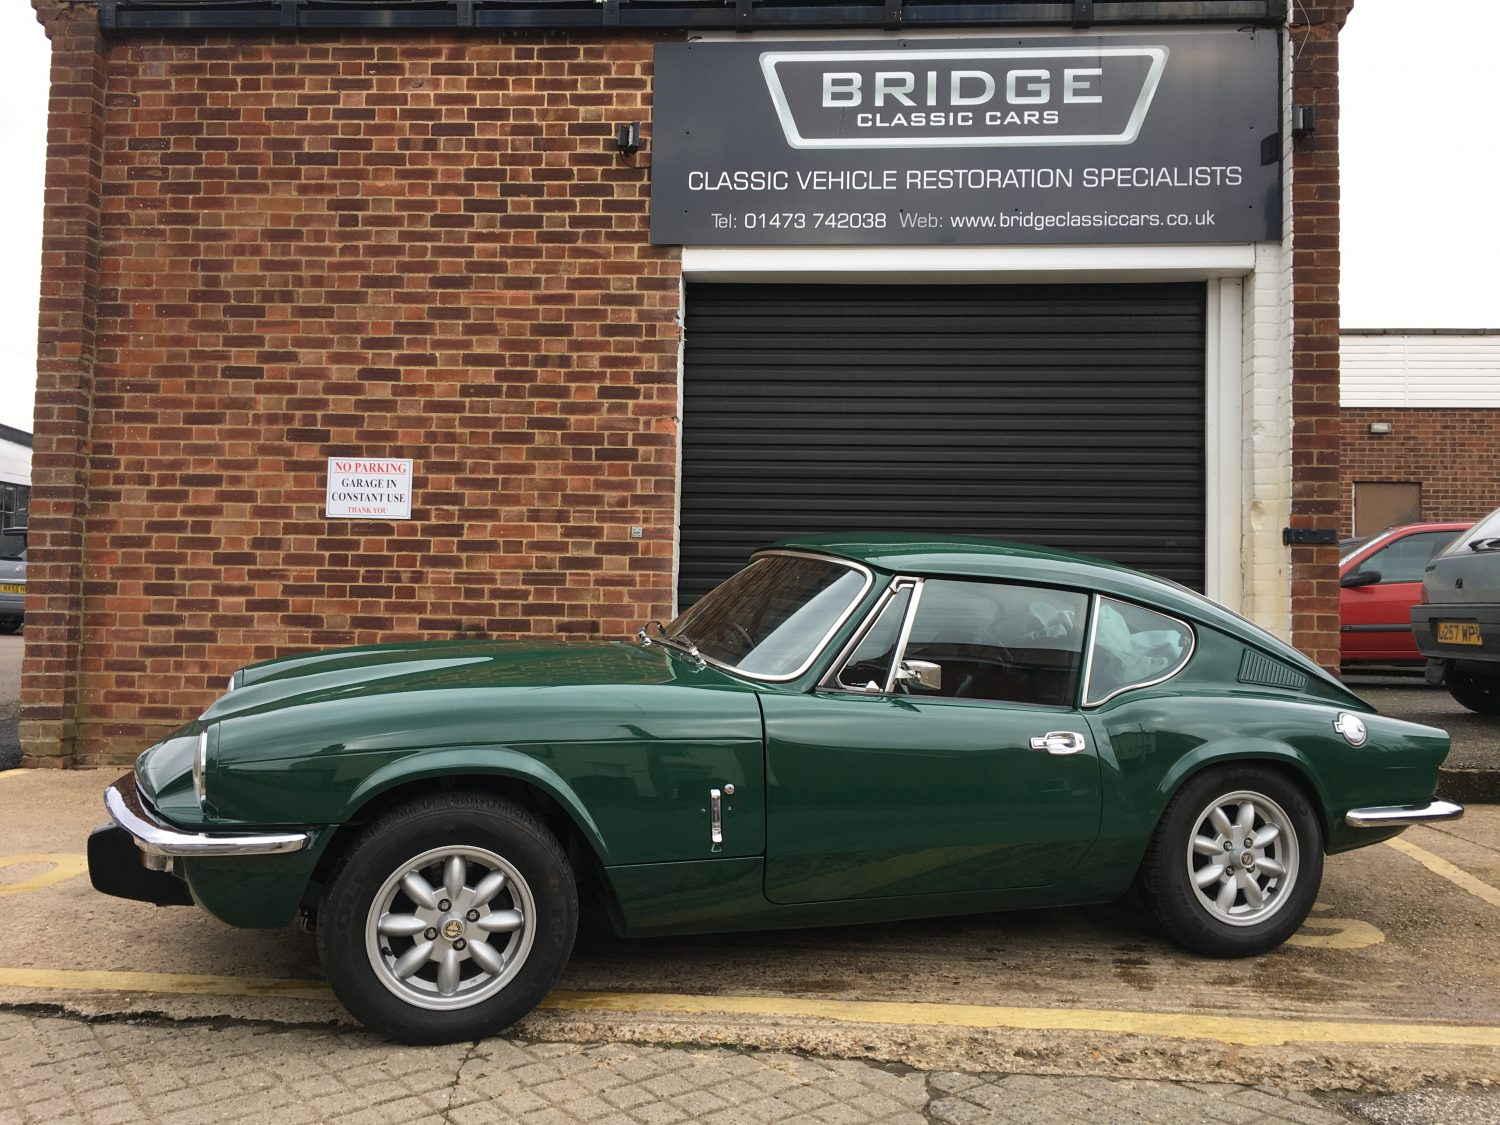 Current Archives - Page 38 of 71 - Bridge Classic Cars